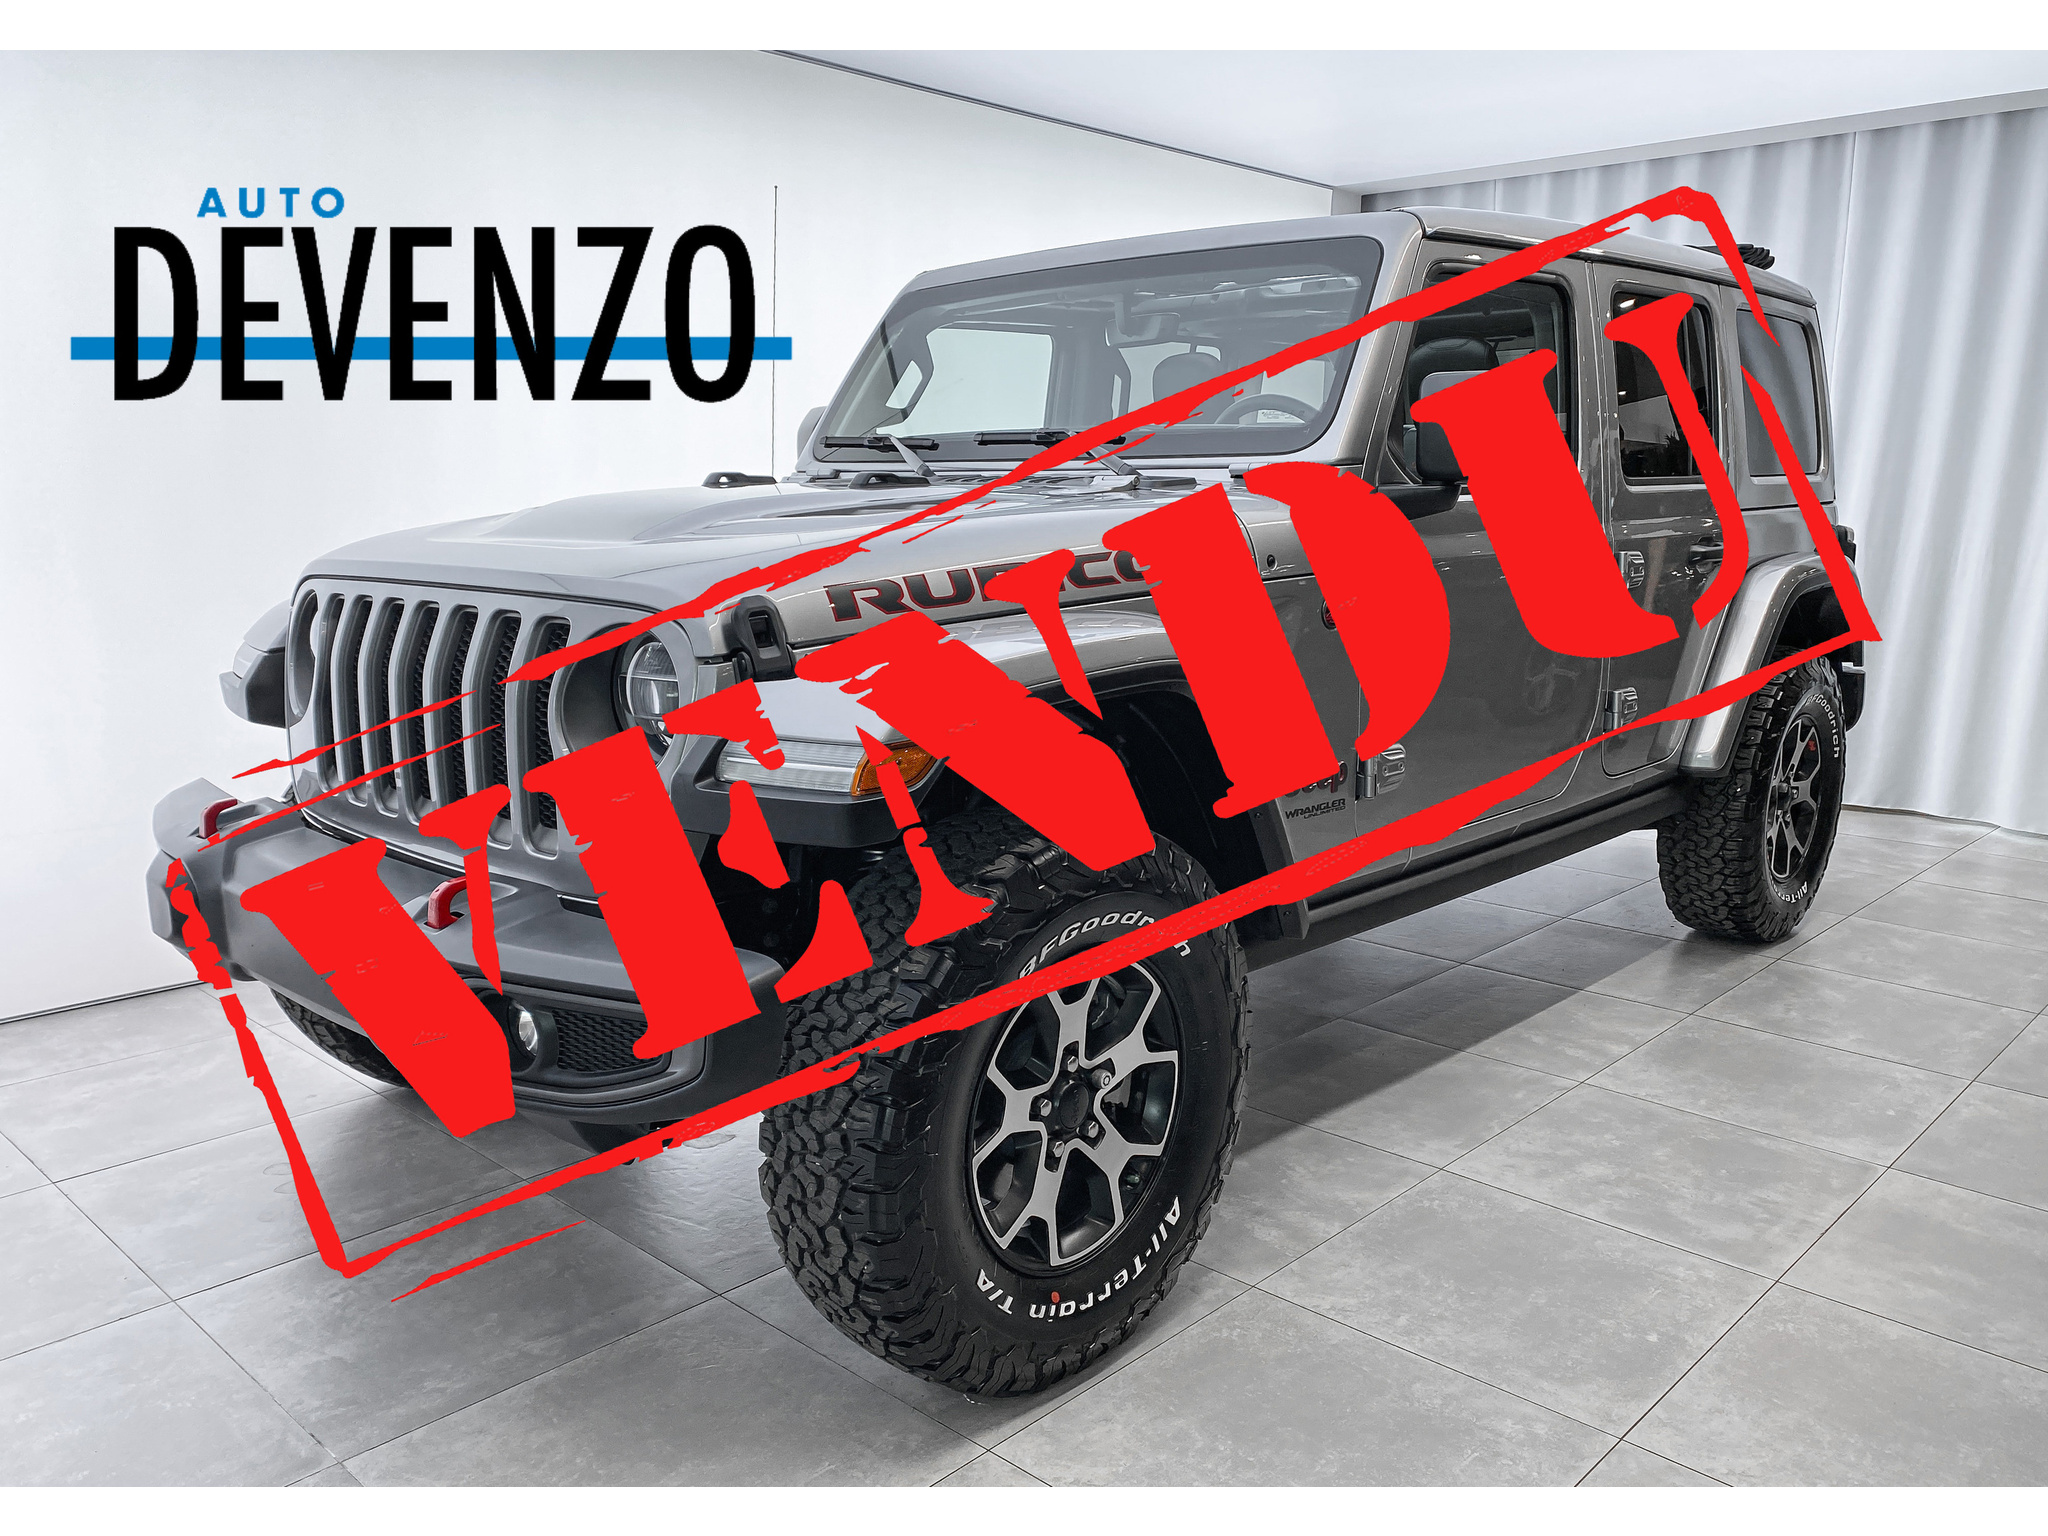 2021 Jeep Wrangler Unlimited Rubicon 4×4 Toit Panoramique SKY complet